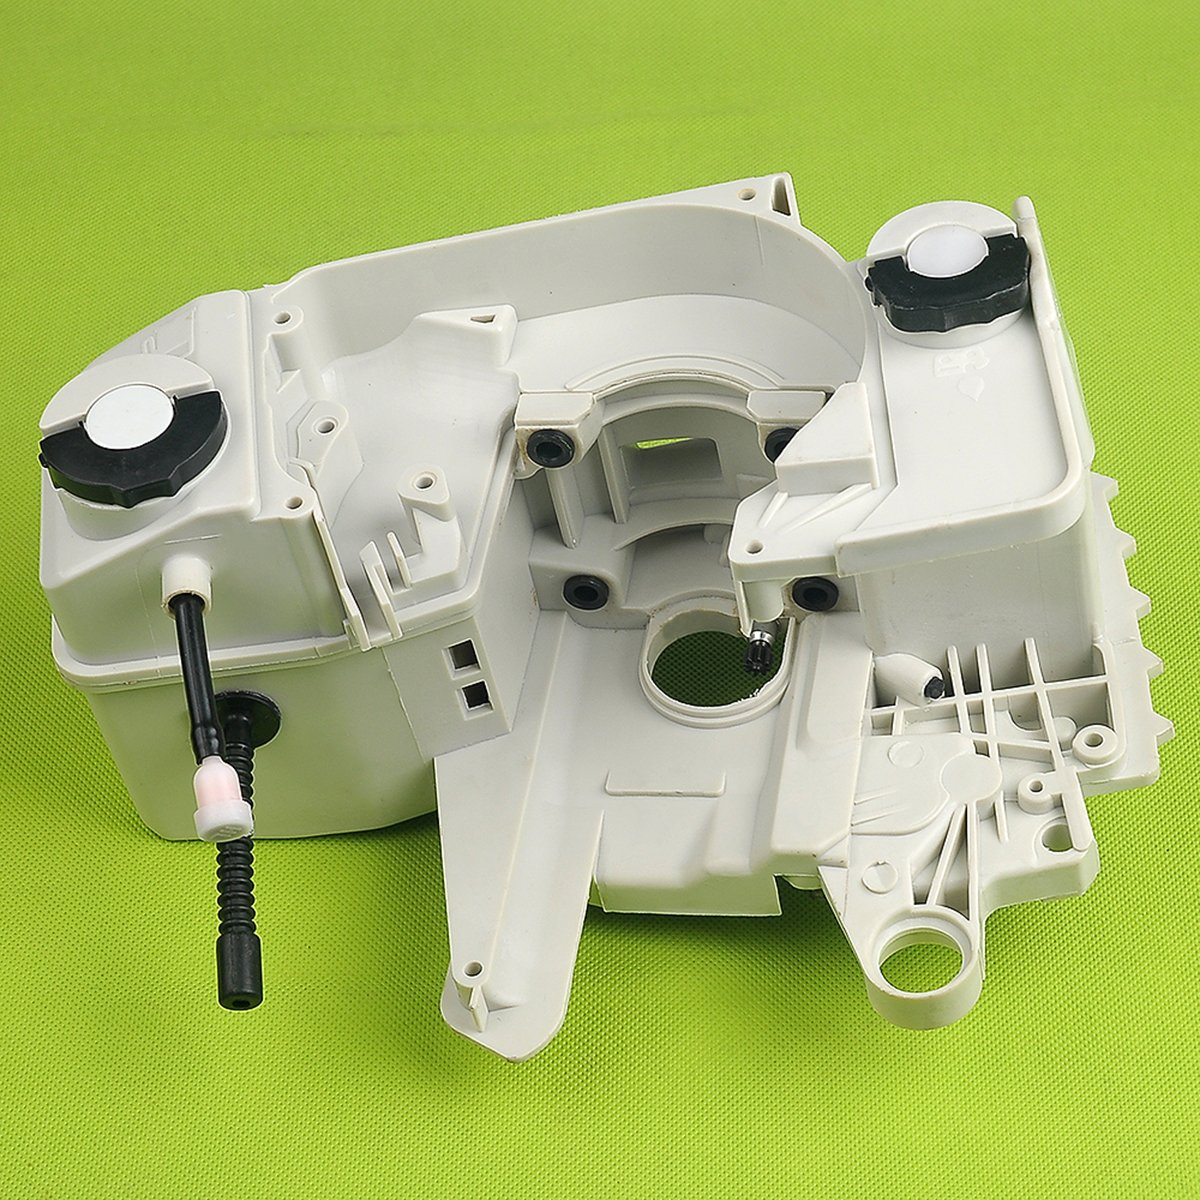 Hipa 1123 020 3003 Fuel Tank Crankcase Engine Housing Stihl Chainsaw Parts Diagram Oil Pump Free Image For With Cap Fit 021 023 025 Ms210 Ms230 Ms250 Garden Outdoor